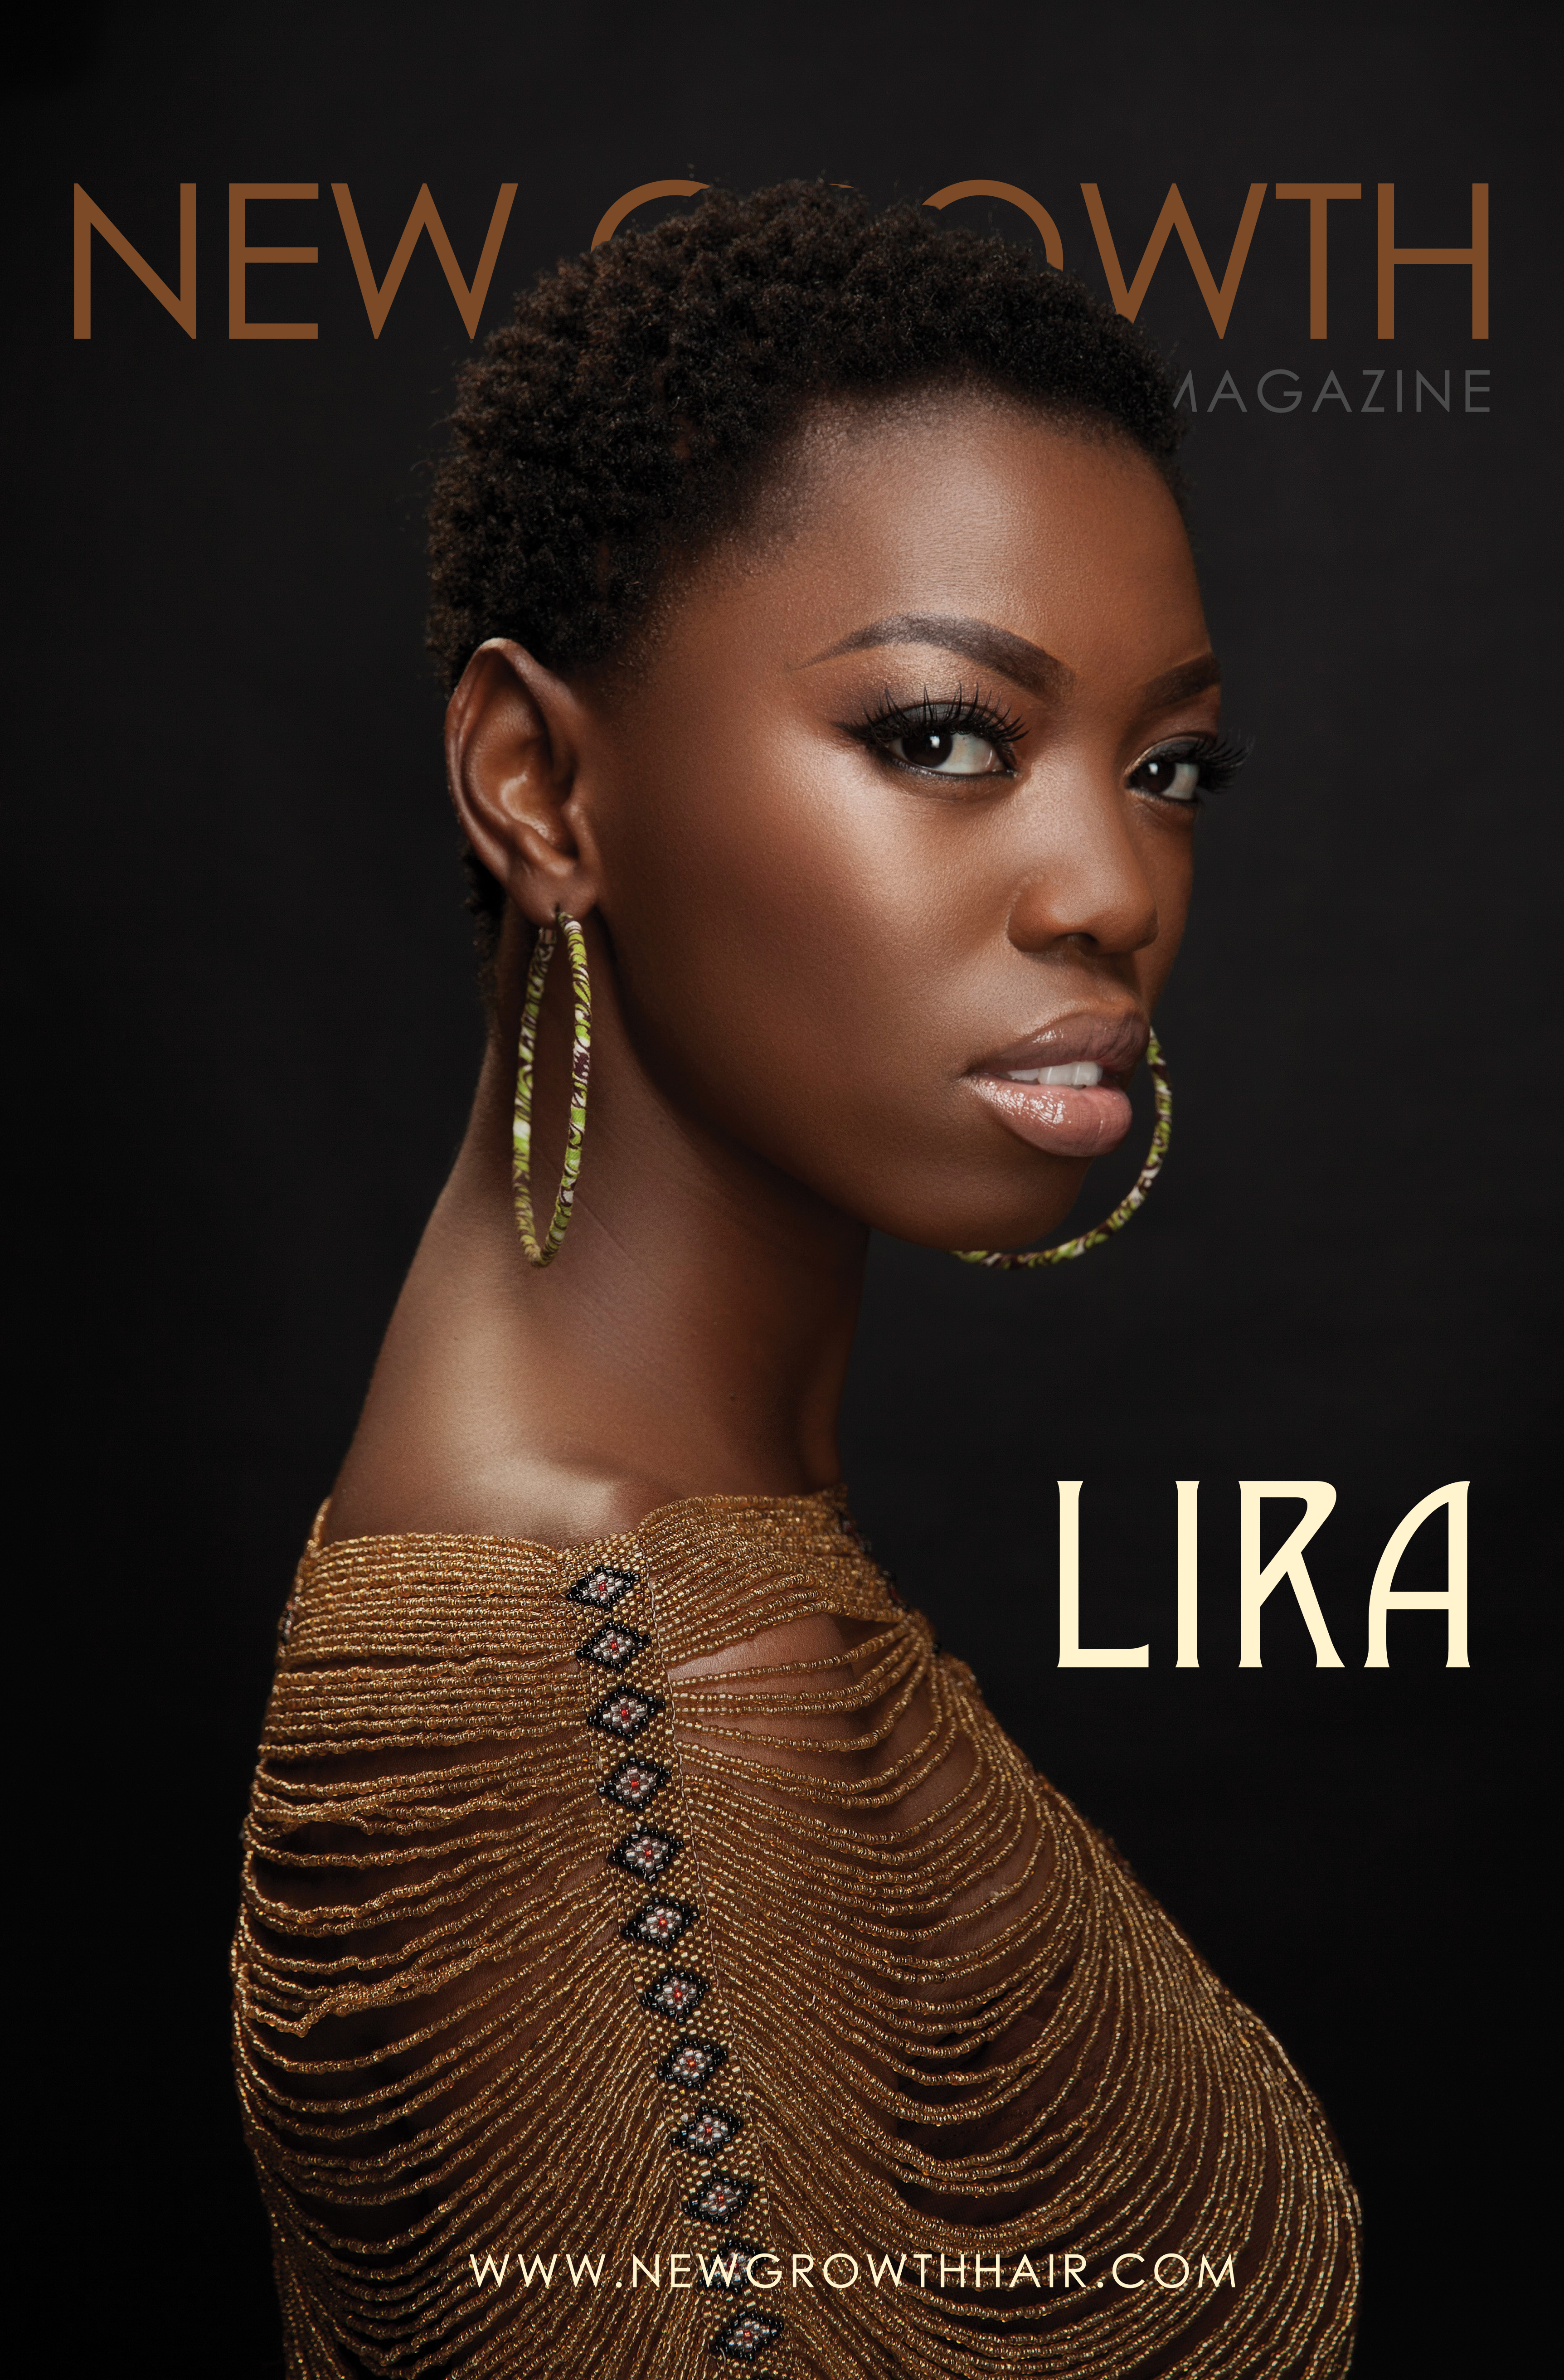 Lira The Natural Voice Of South Africa New Growth Hair